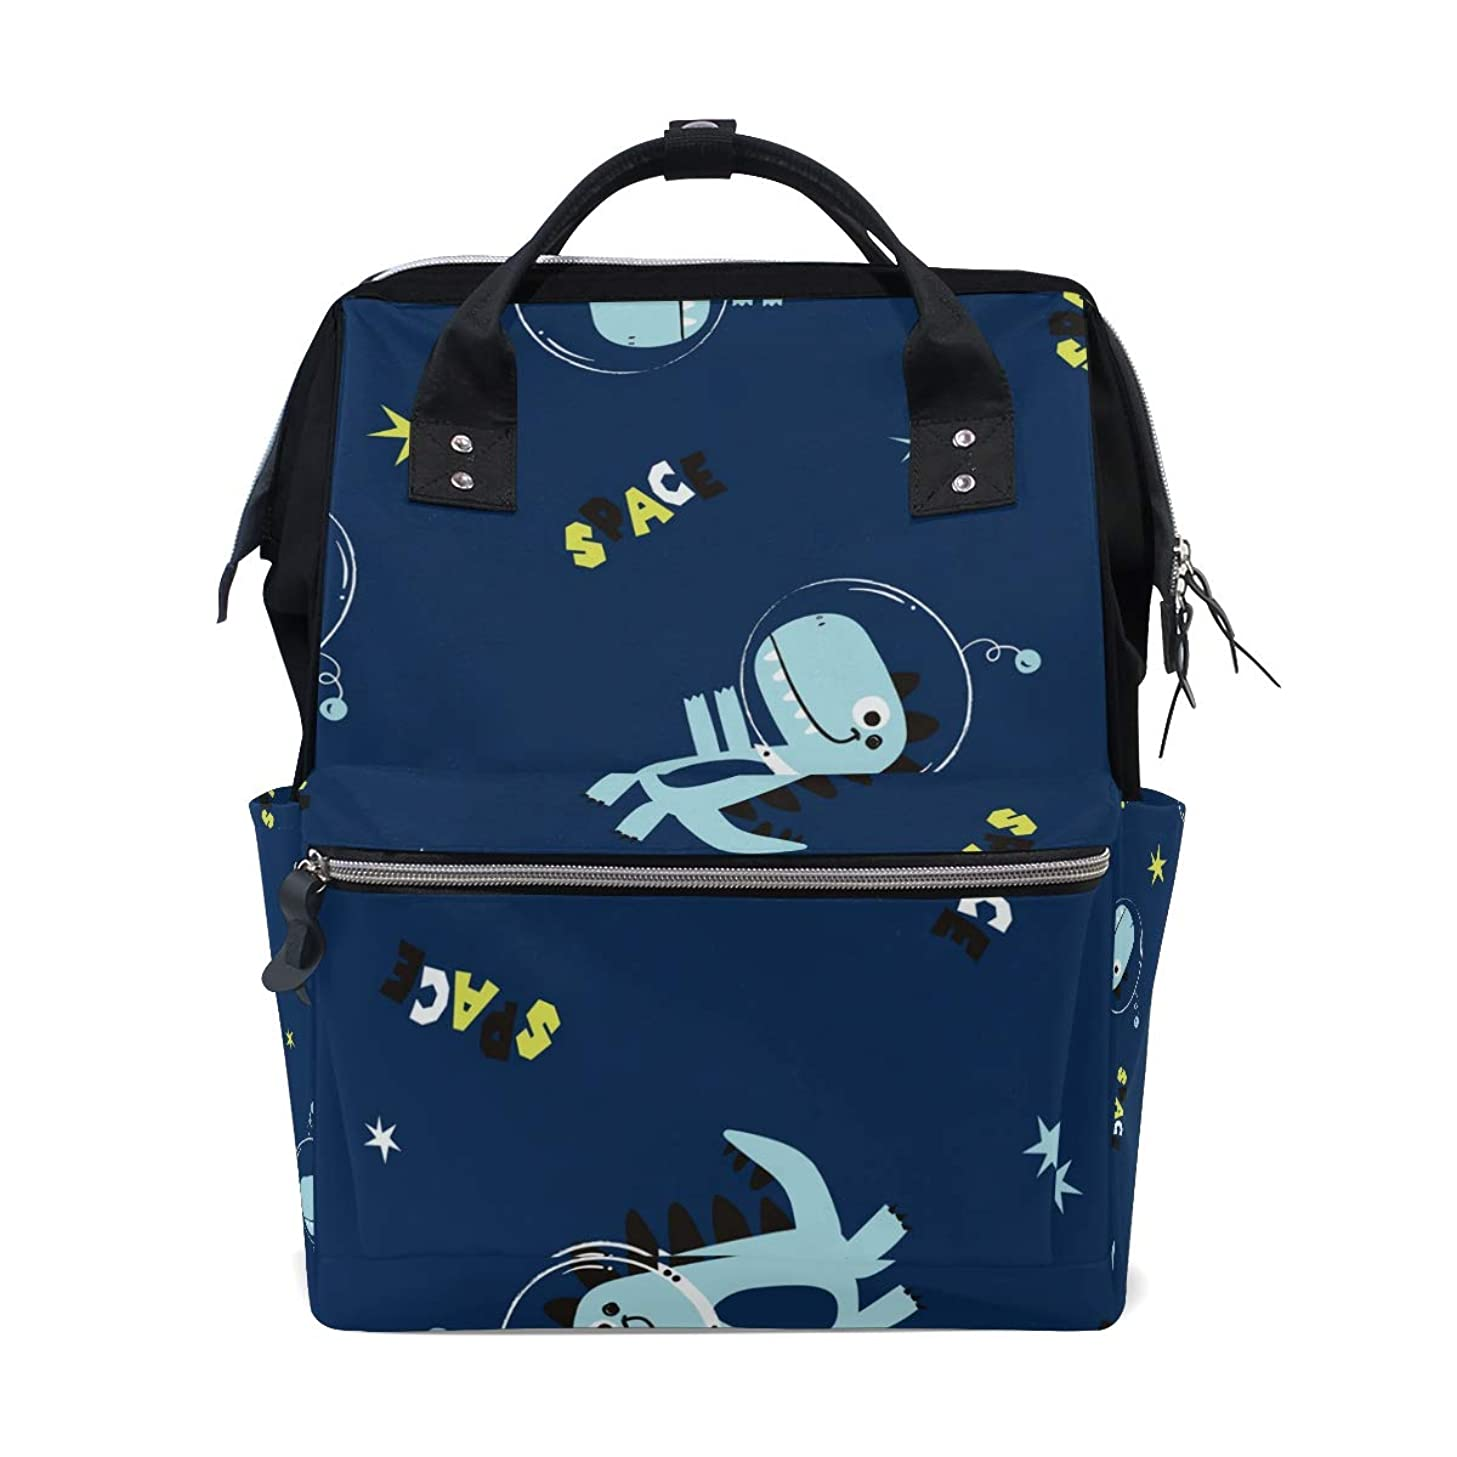 Cartoon Blue Dinosaur Astronaut School Backpack Large Capacity Mummy Bags Laptop Handbag Casual Travel Rucksack Satchel For Women Men Adult Teen Children